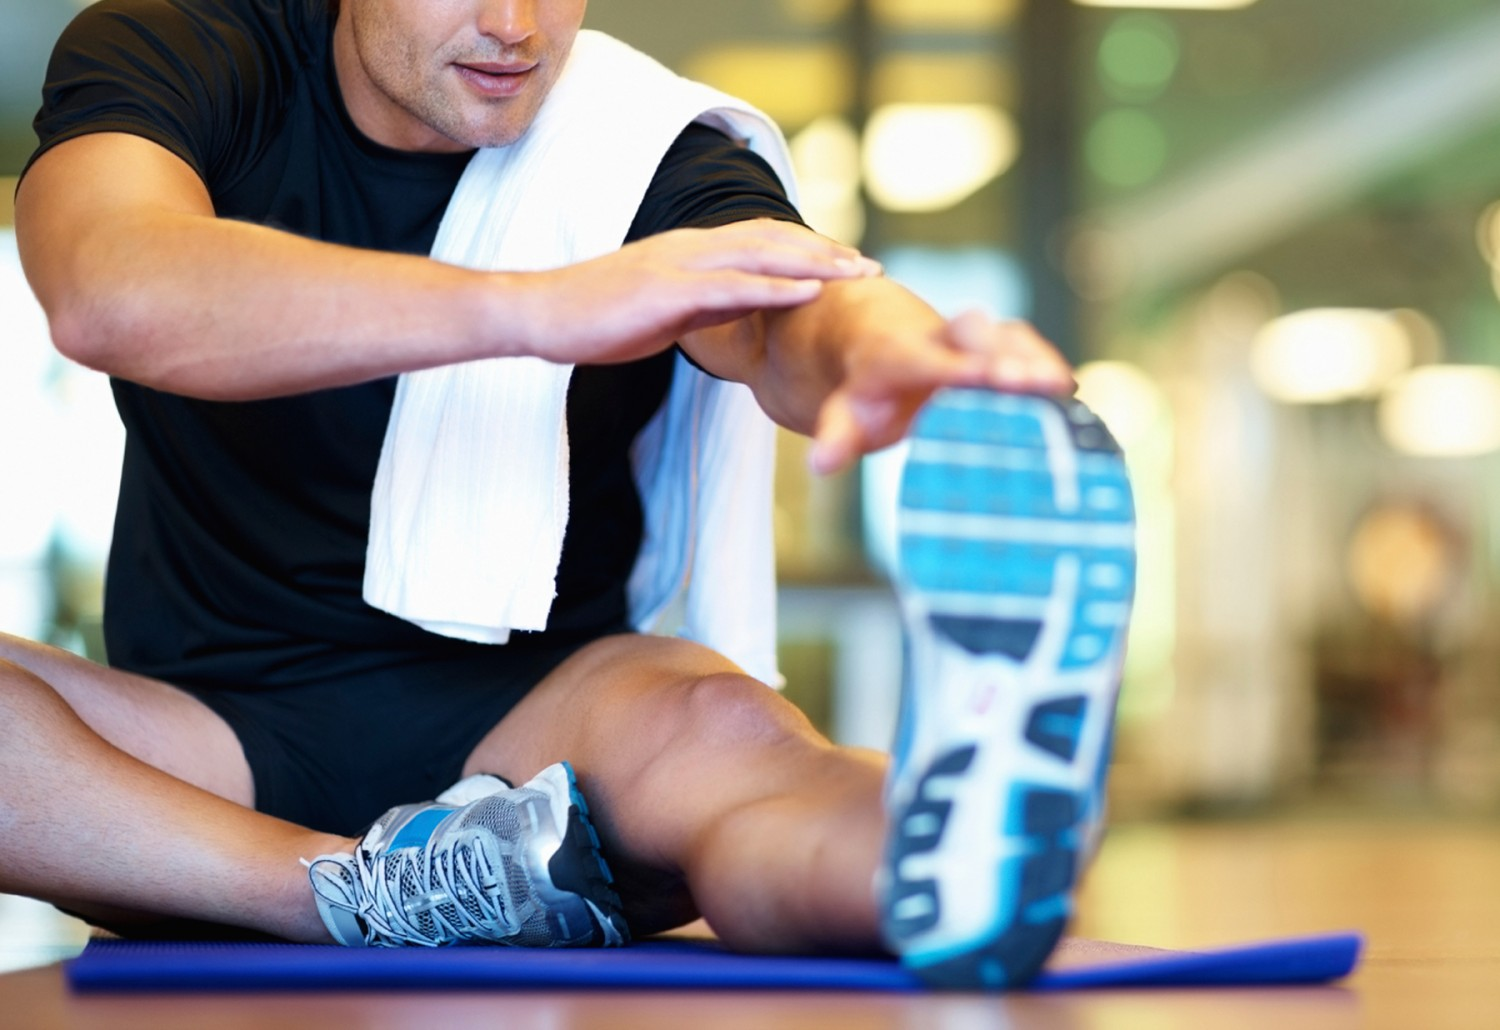 How Many Rest Days Do You Really Need to Recover?